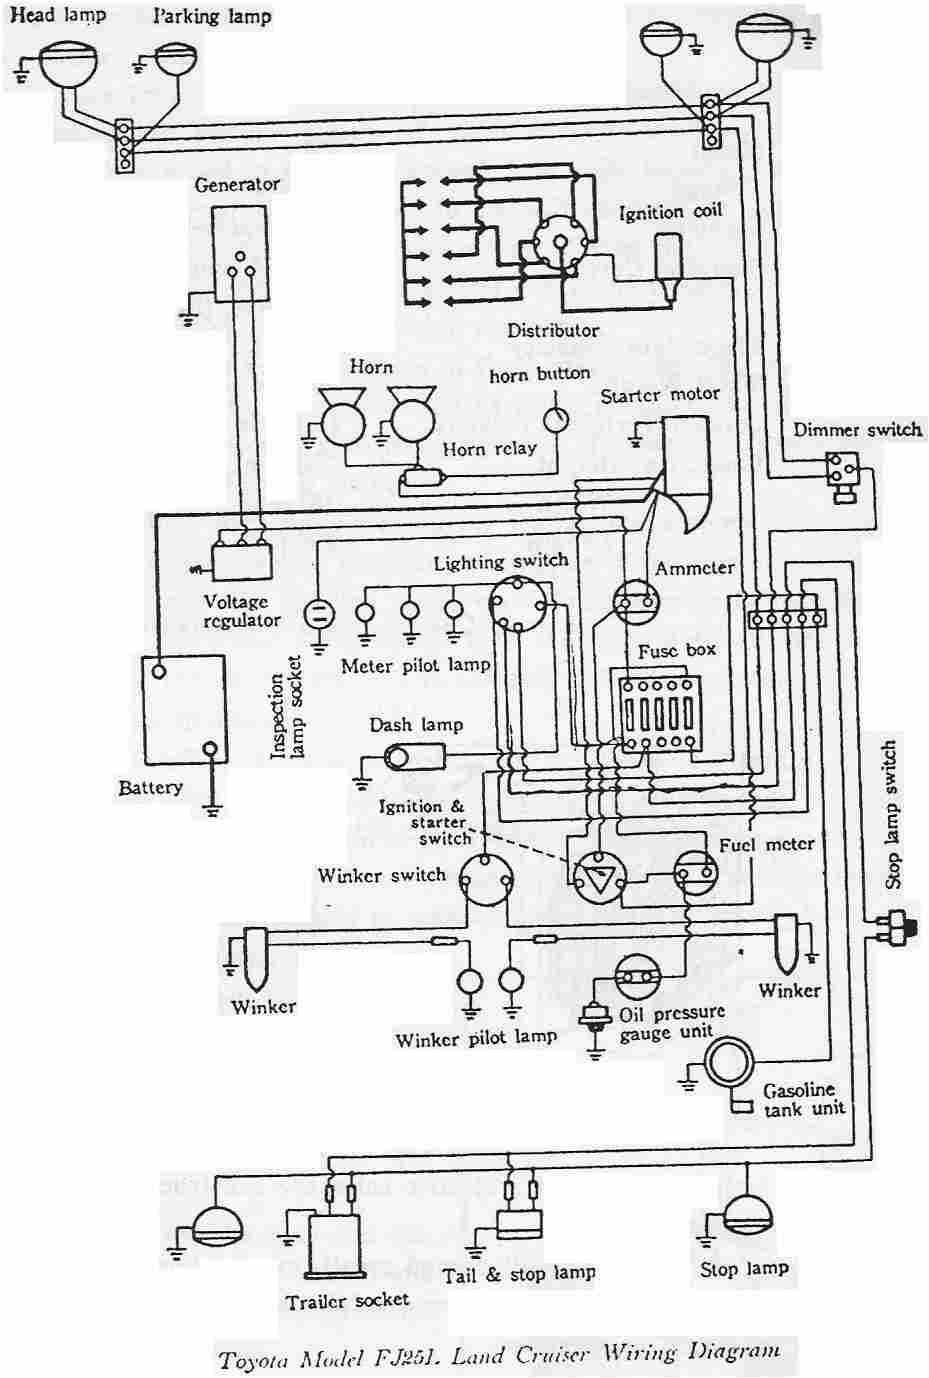 Toyota Land Cruiser Fj25 Electrical on 5 wire relay wiring diagram for door lock